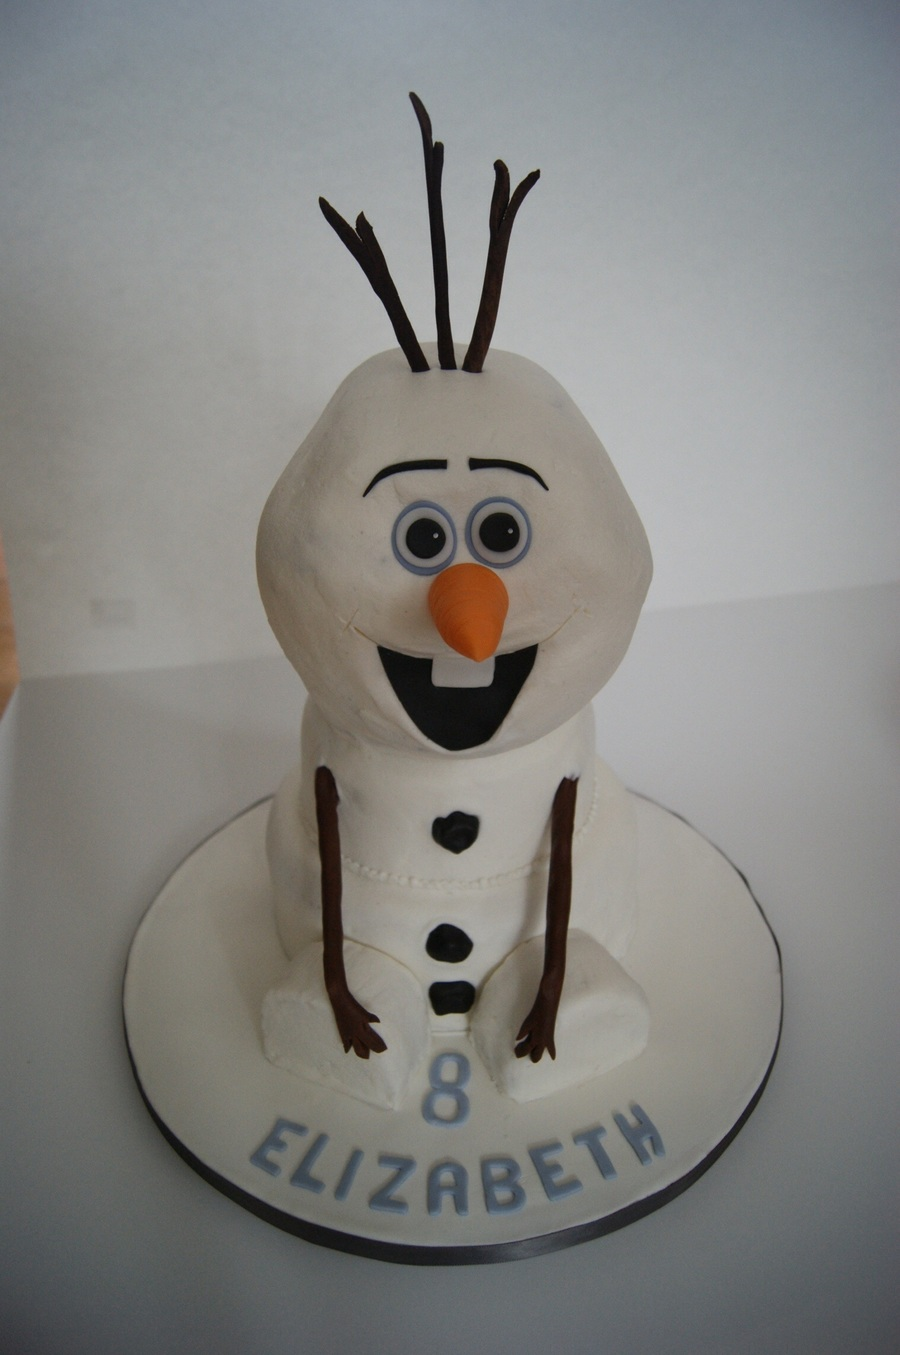 Olaf From Frozen on Cake Central